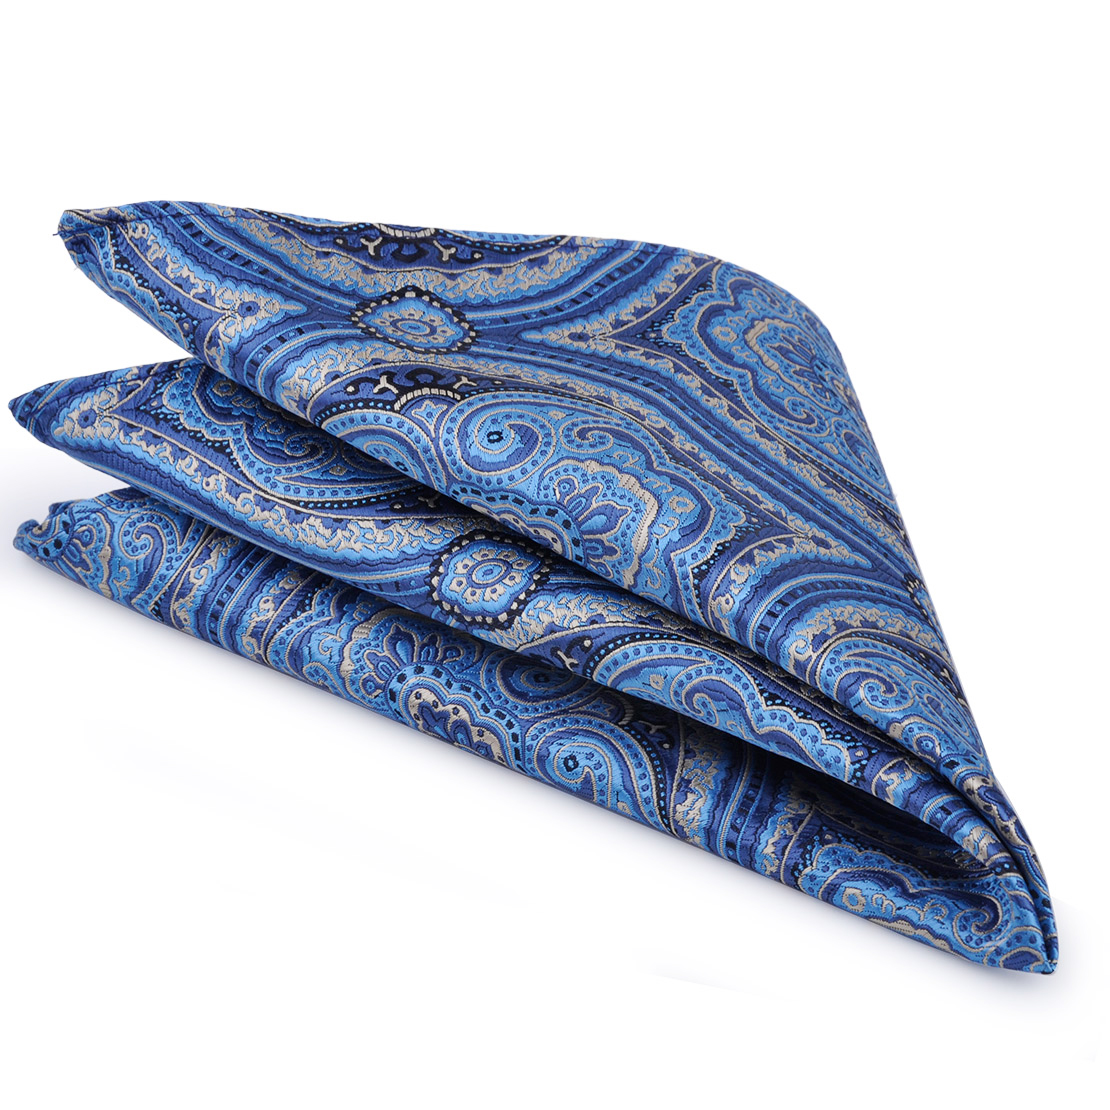 CiciTree New Men's Paisley Suit Pocket Square Men Silk Polyester Jacquard Woven Handkerchief For Wedding Boys Father's Gift